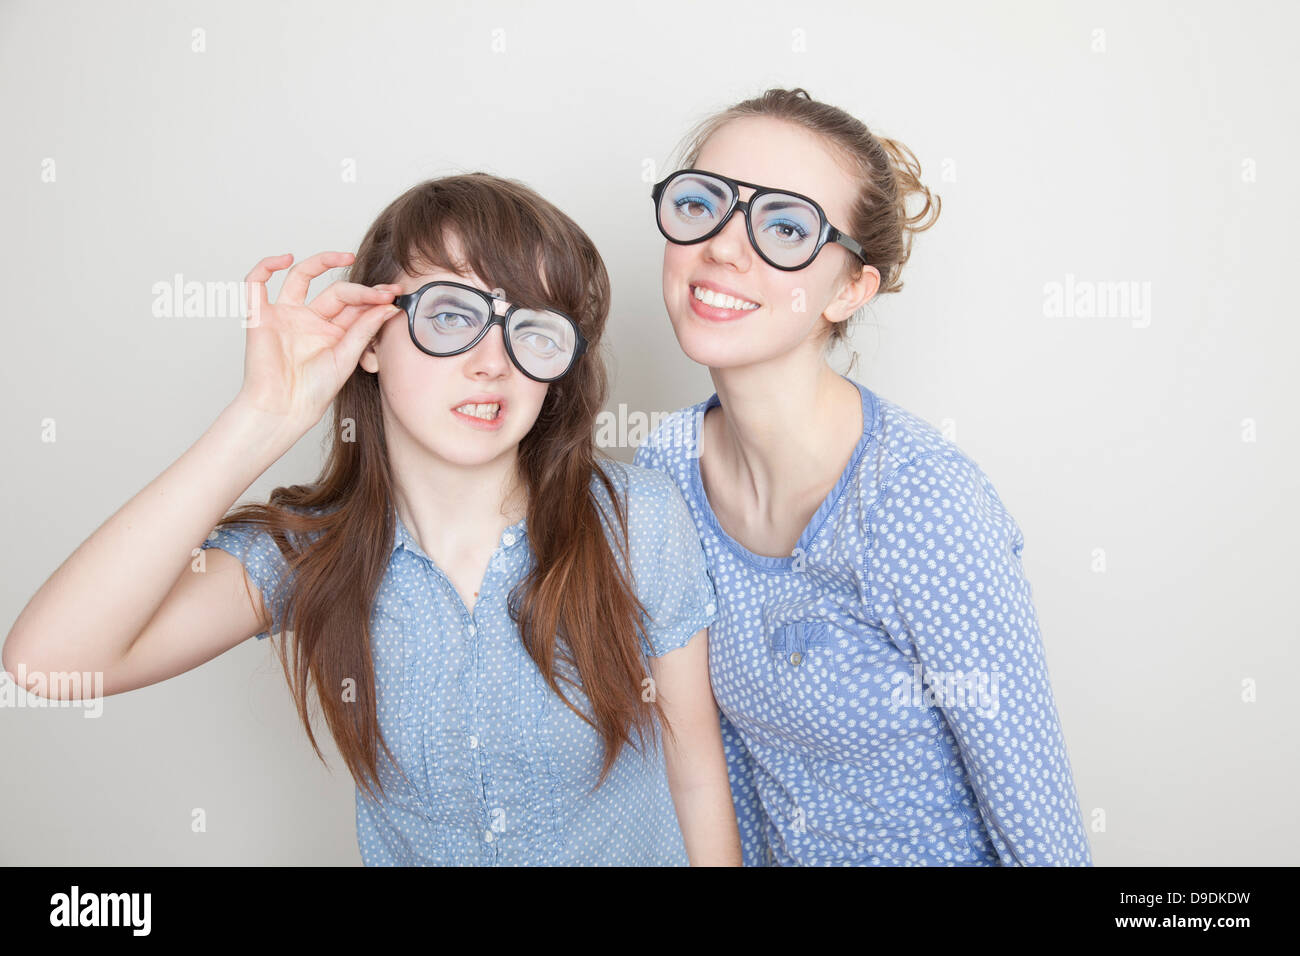 Two girls wearing fake glasses - Stock Image